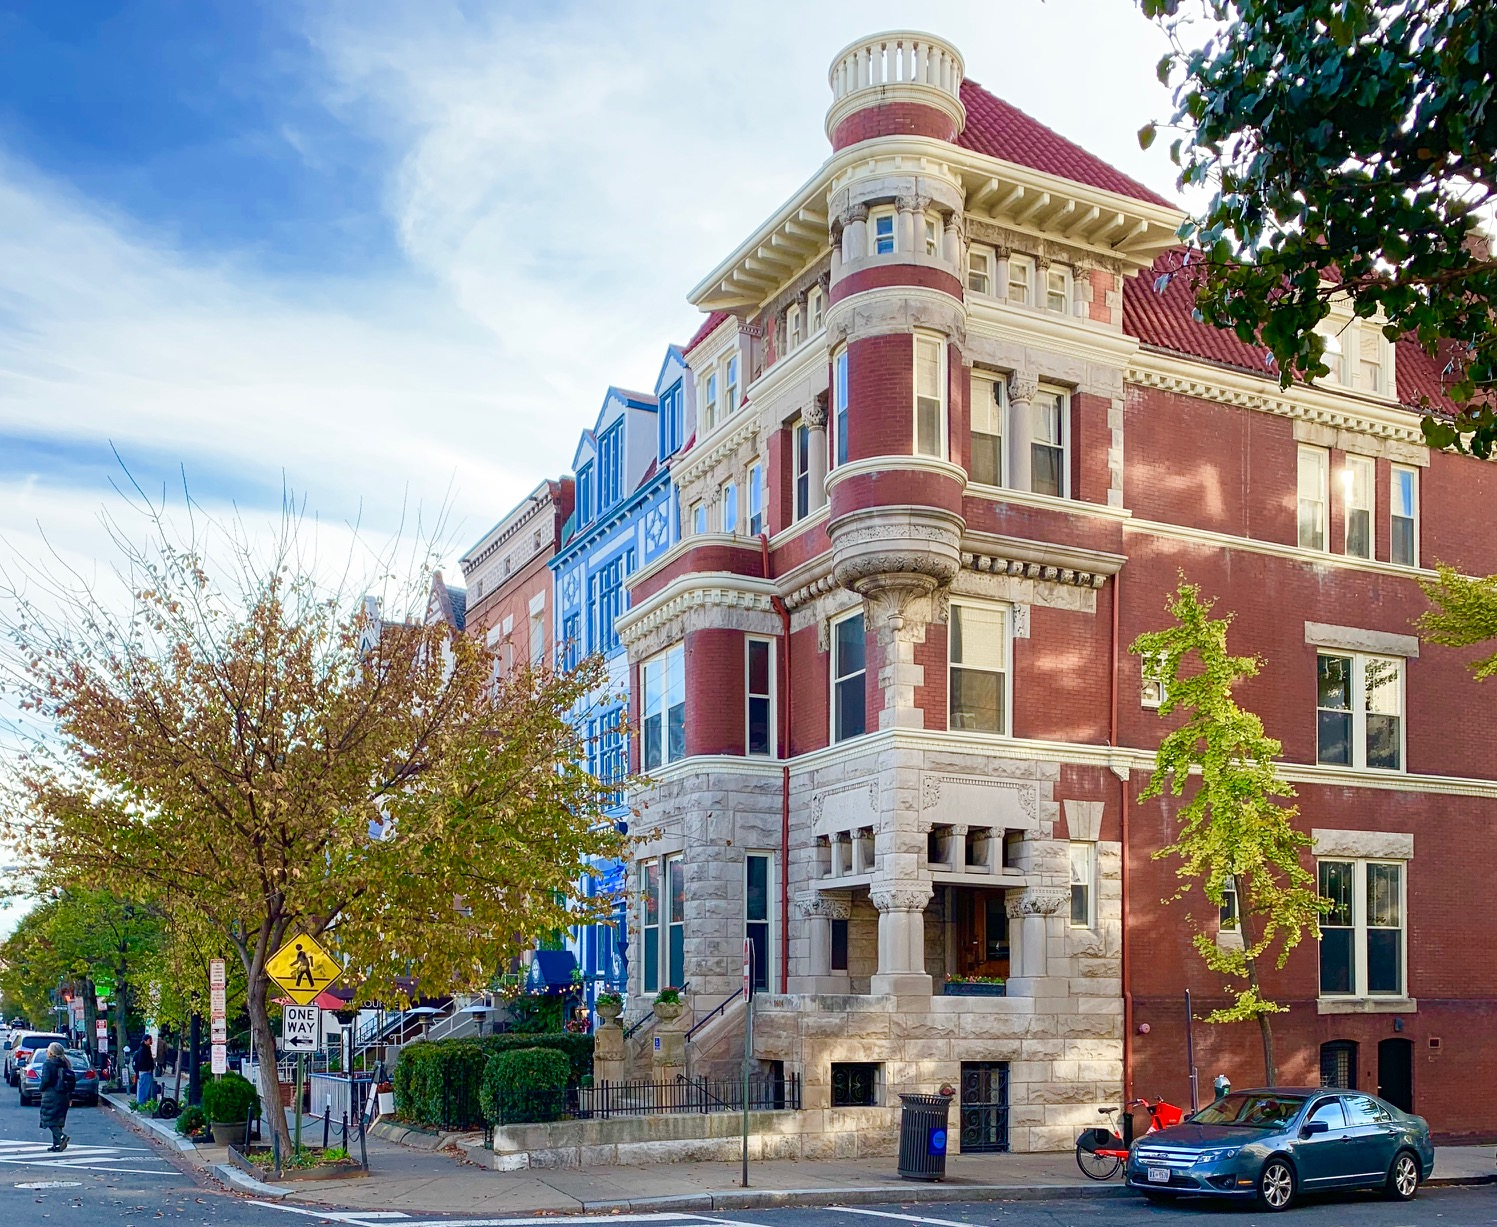 Washington, DC Townhomes For Sale. Connecticut Ave in Dupont Circle. Artyom Shmatko Luxury Real Estate Agent